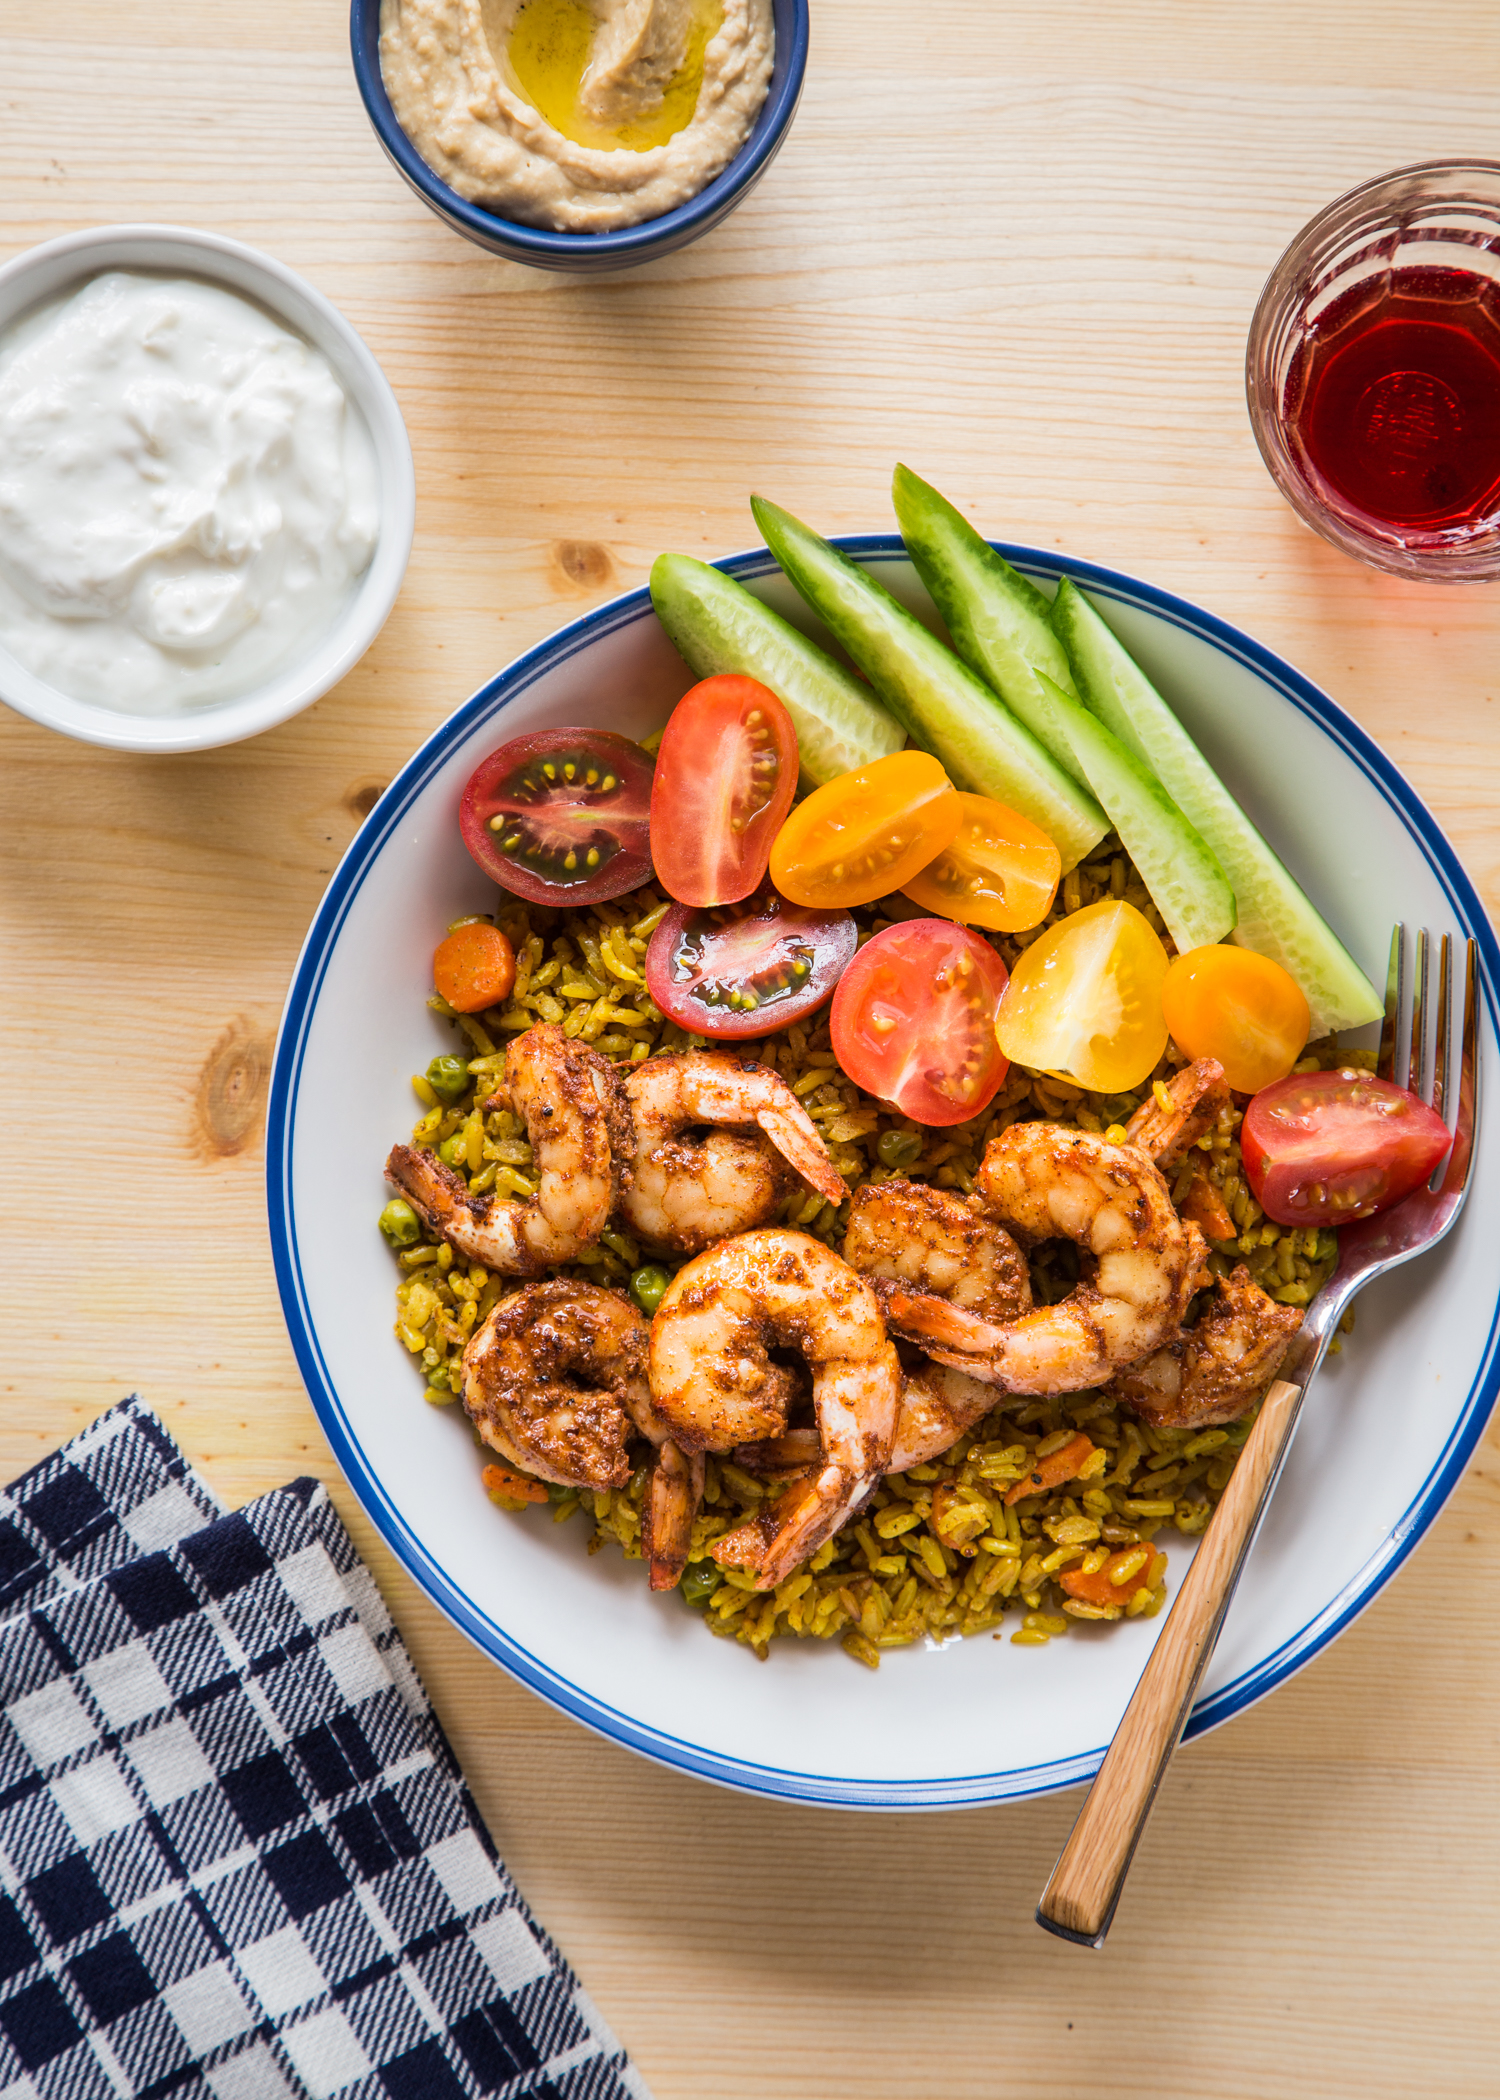 Shrimp Shawarma Bowls are a spicy twist on classic Shawarma and perfect for meatless Fridays during Lent